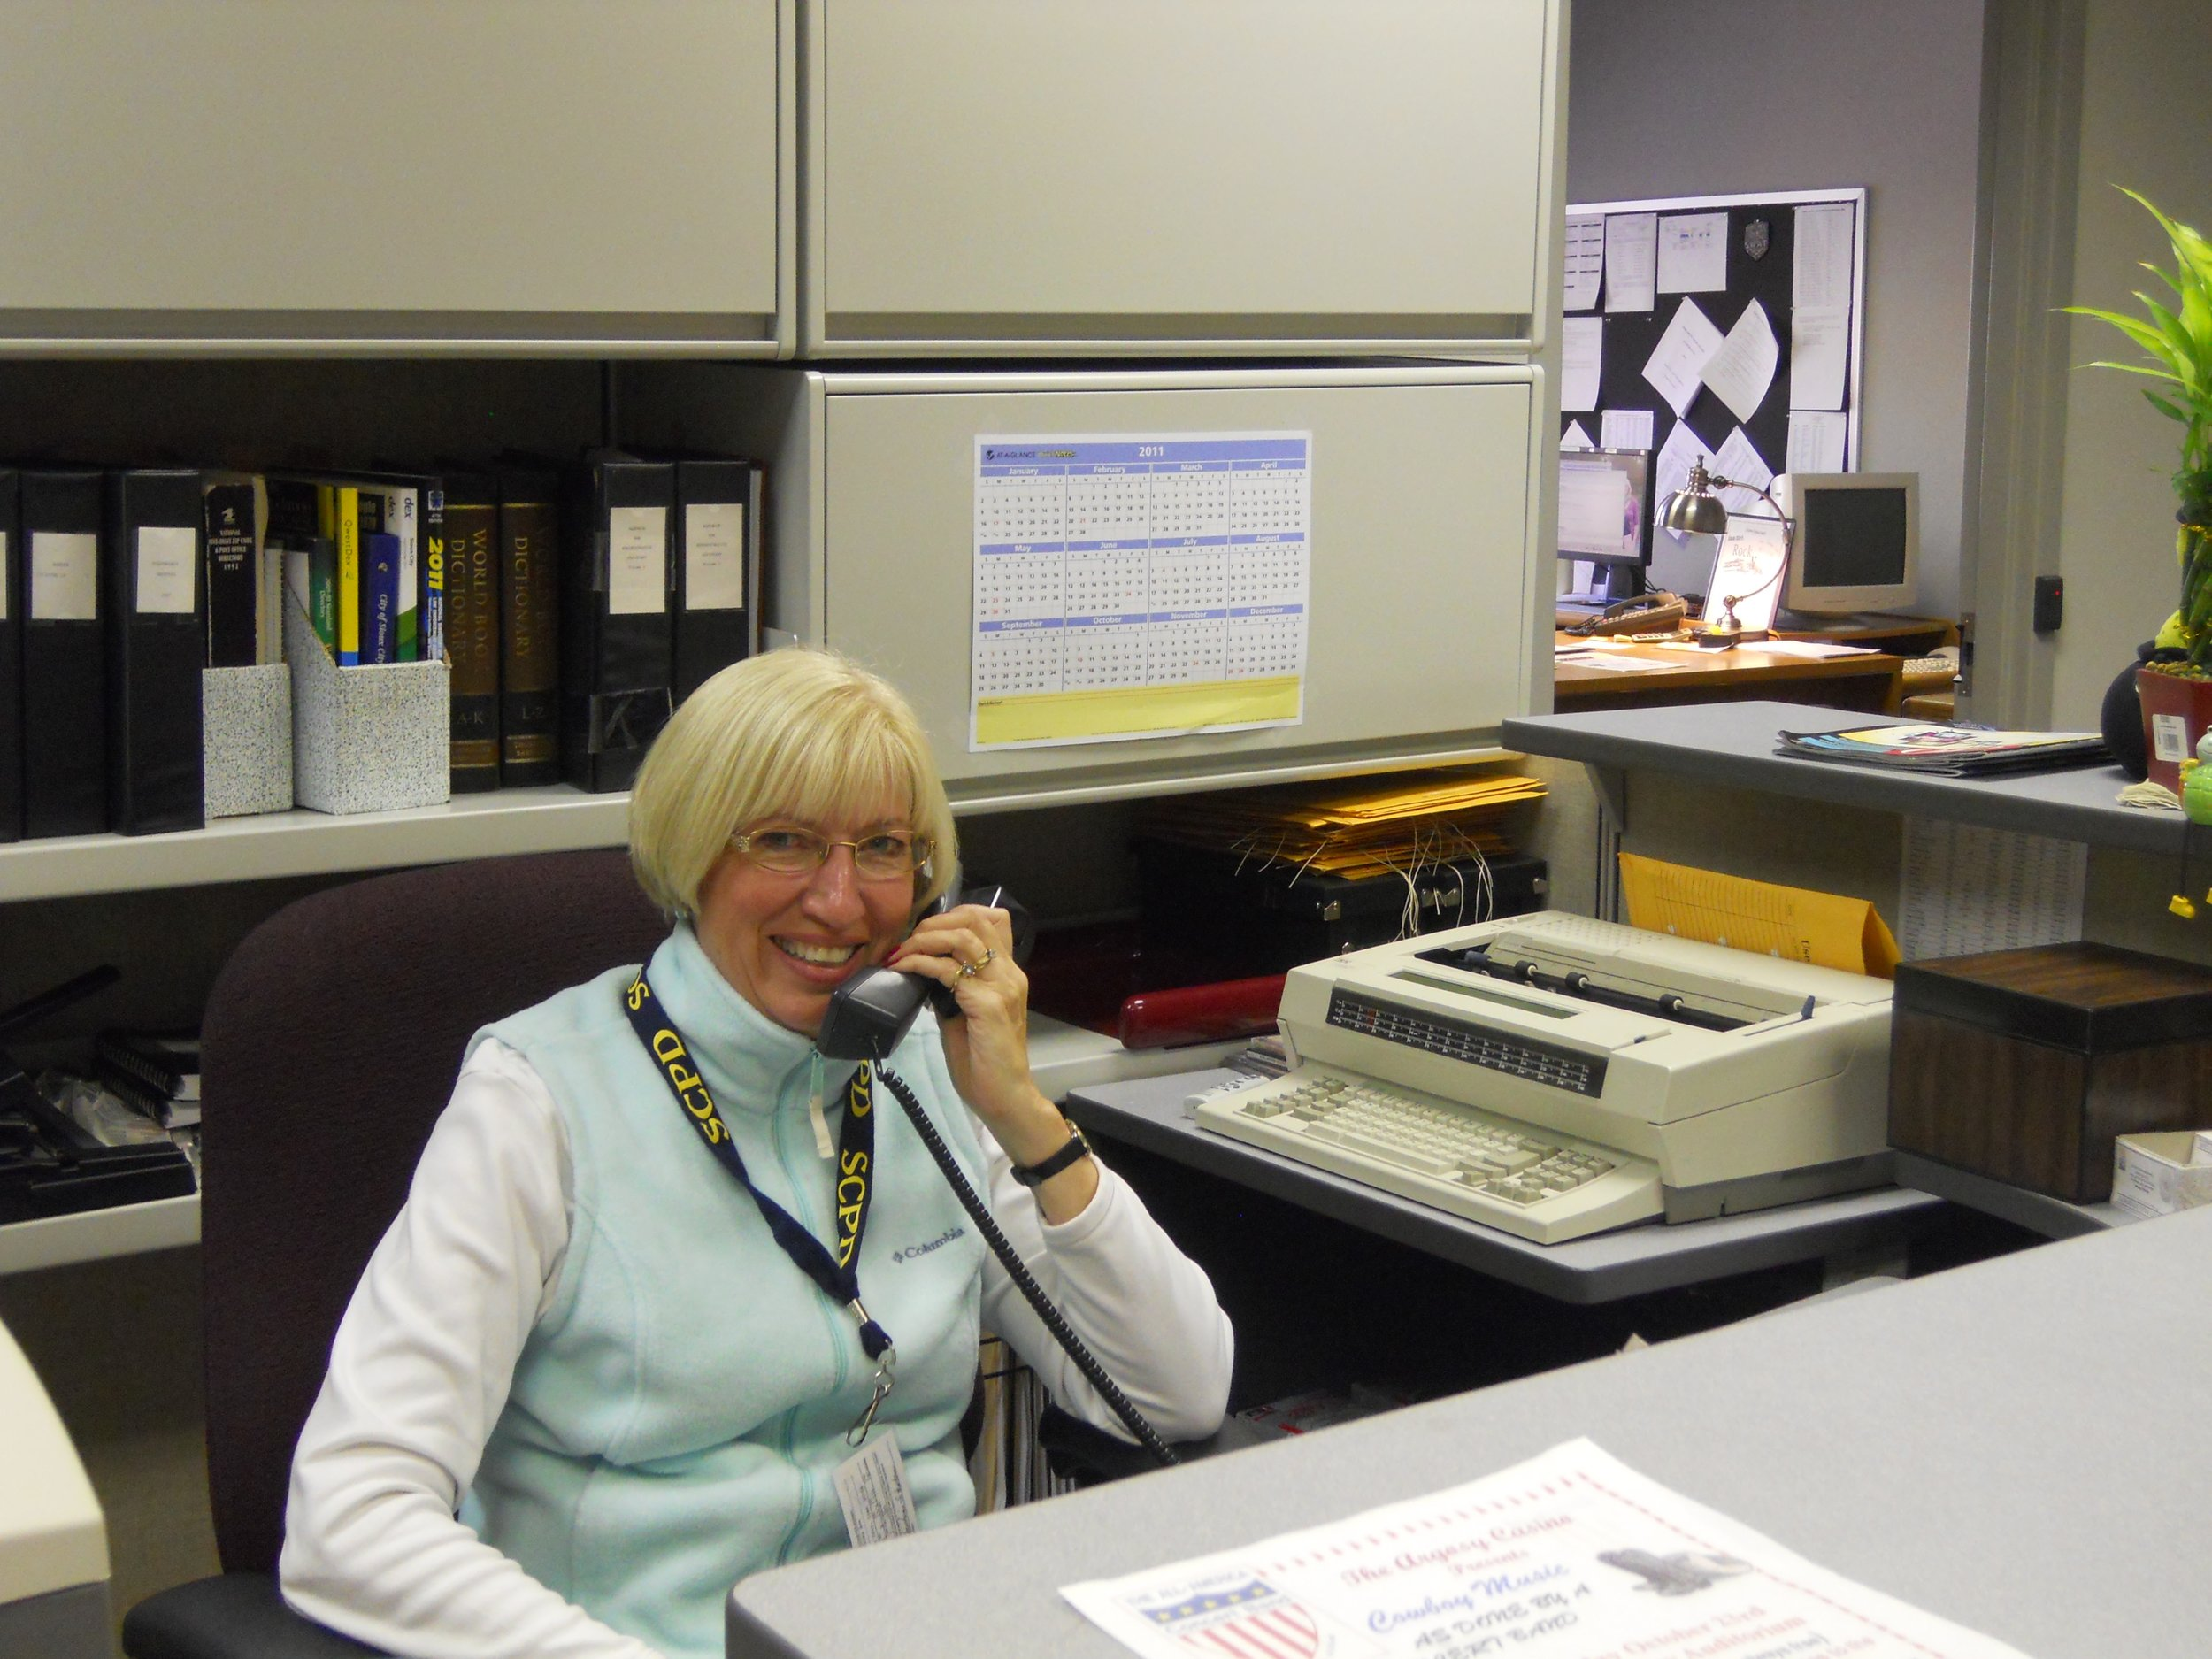 Pam assisting as a clerical volunteer in Police Administration